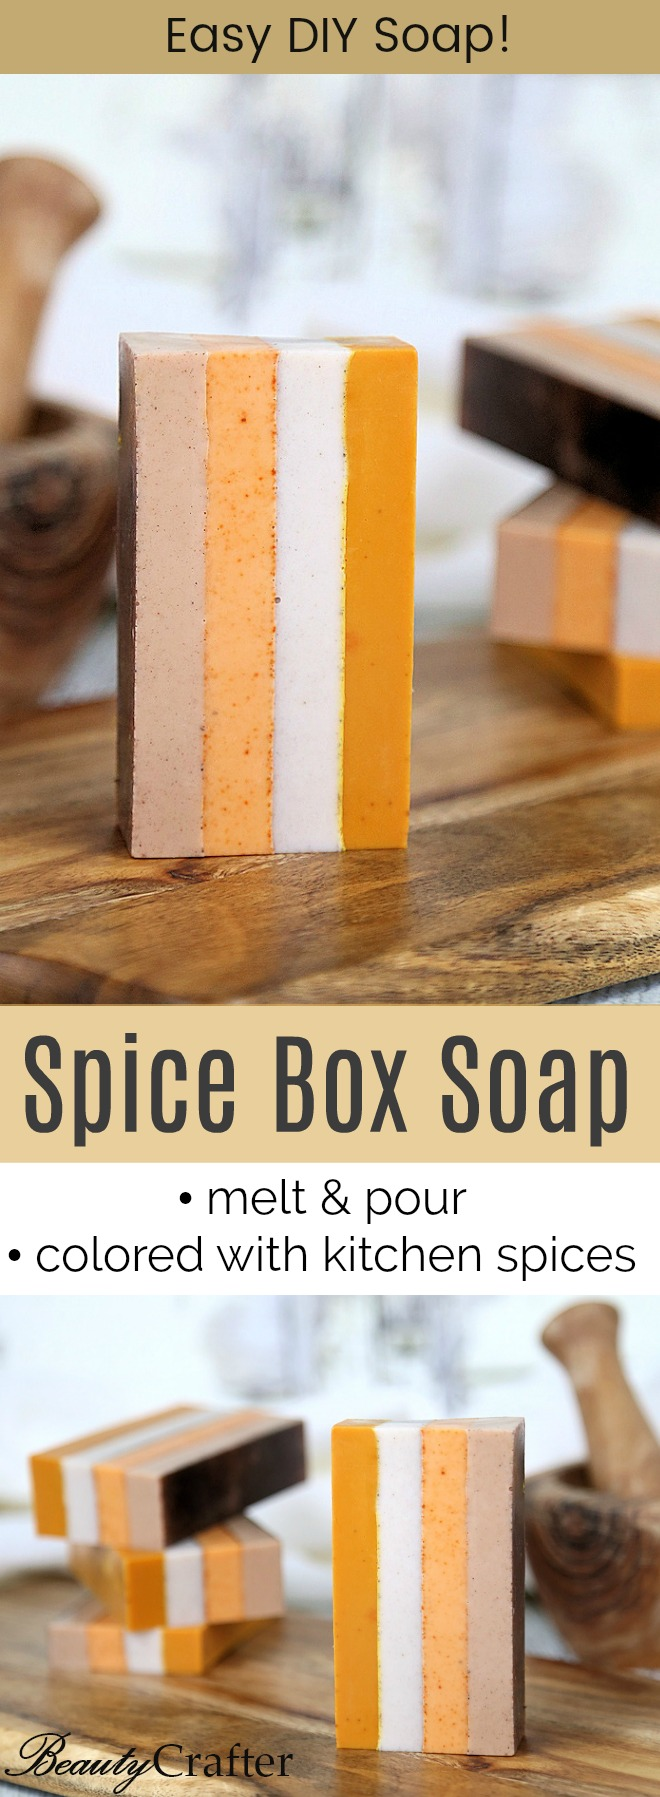 DIY Spice Soap  Melt and Pour soap Striped with Natural colors from kitchen spices. DIY gift idea. #soapmaking #diygifts #crafts #soap